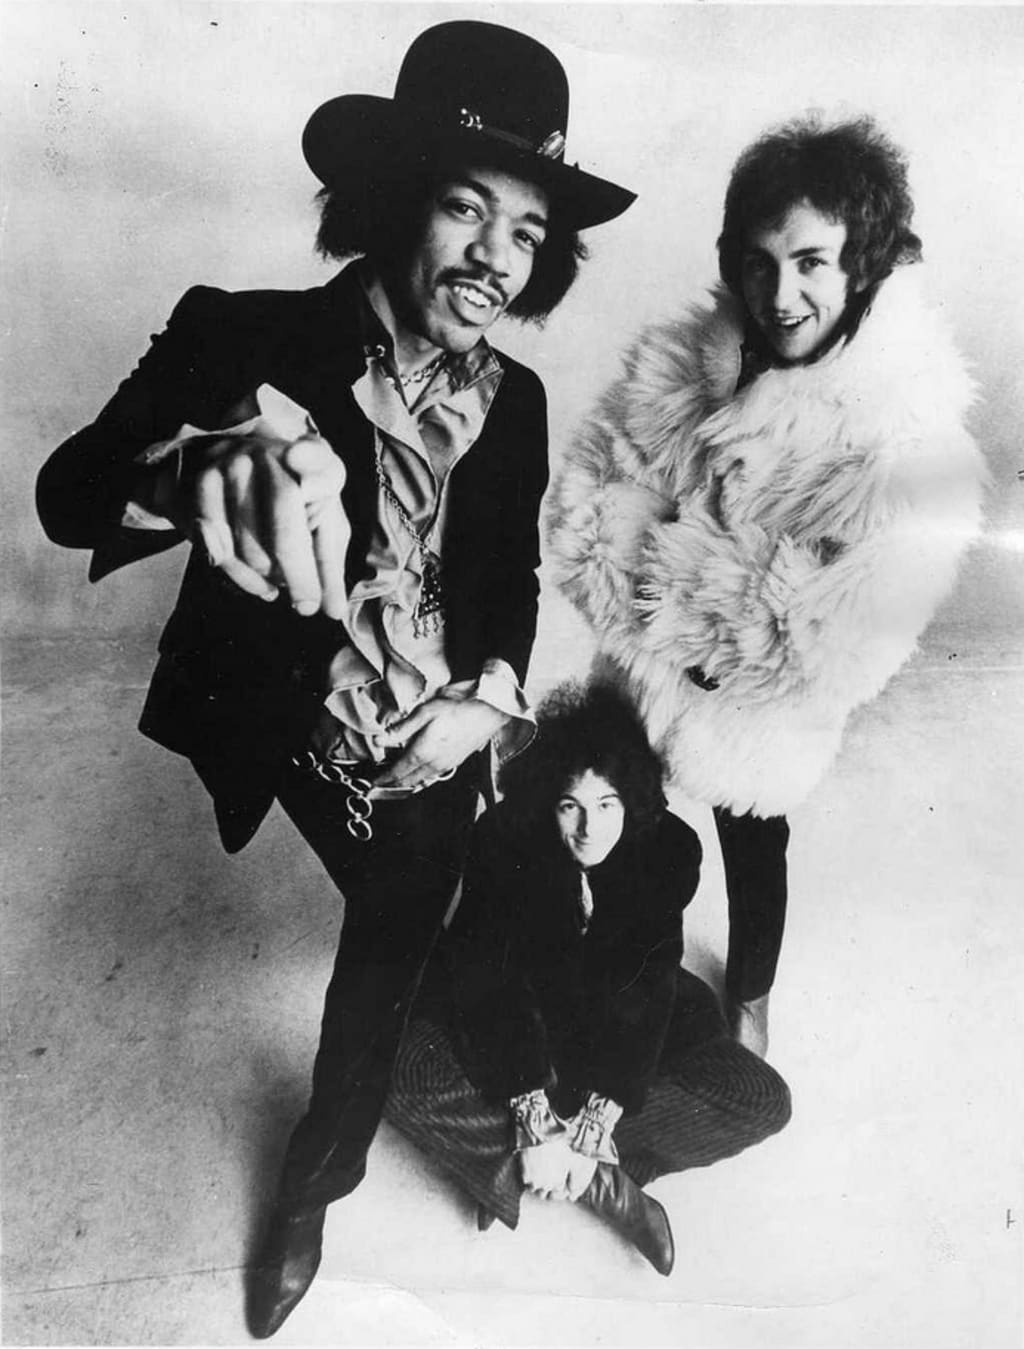 Jimi Hendrix Lost the Original Mix Tape to One of His Albums